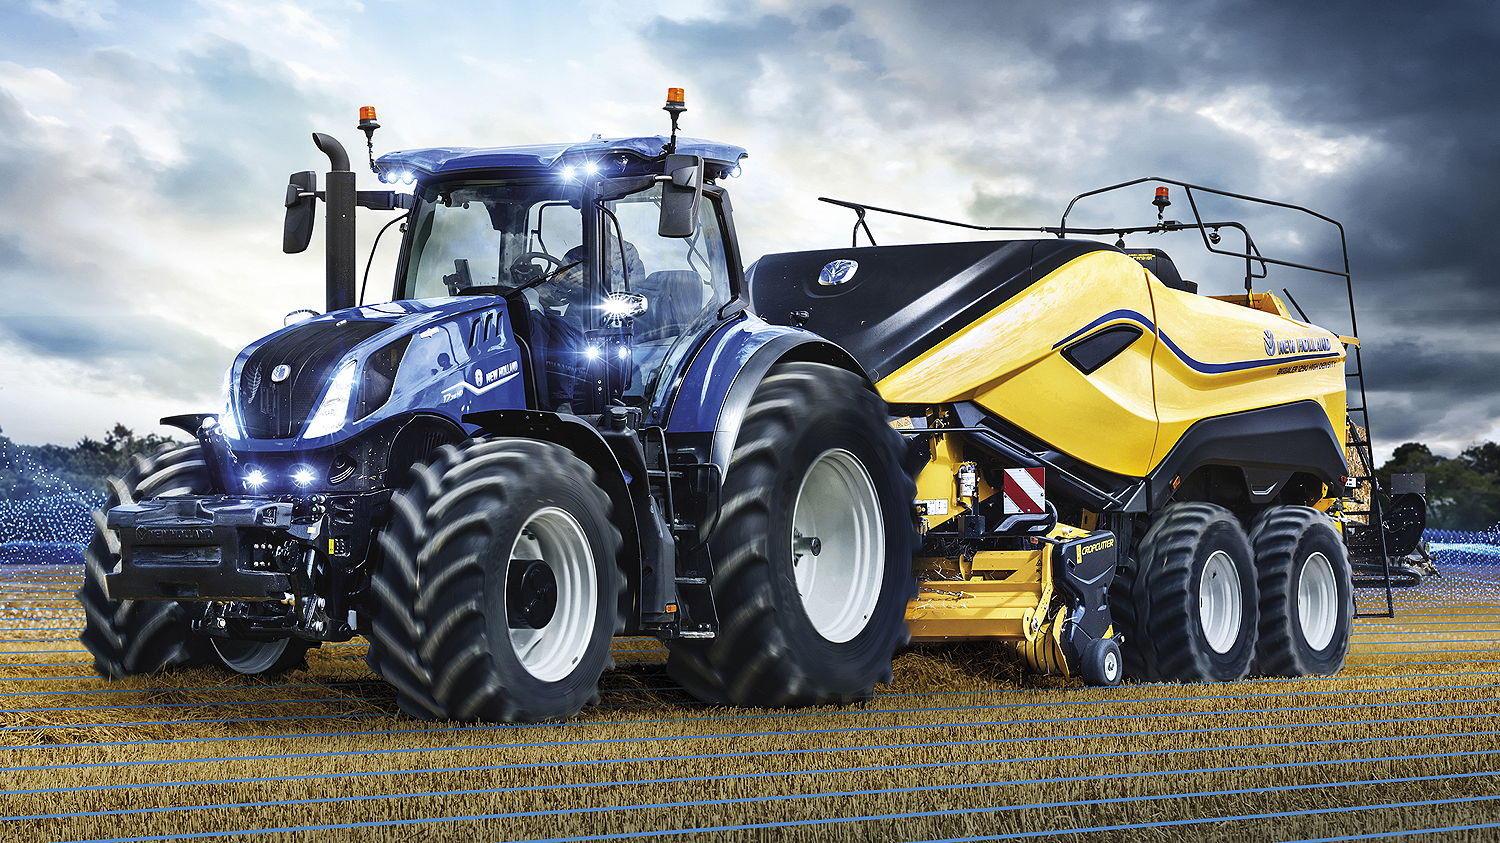 The redesigned New Holland T7HD Horizon Ultra cab has further improved visibility to the front and down to the rear hitch and implement